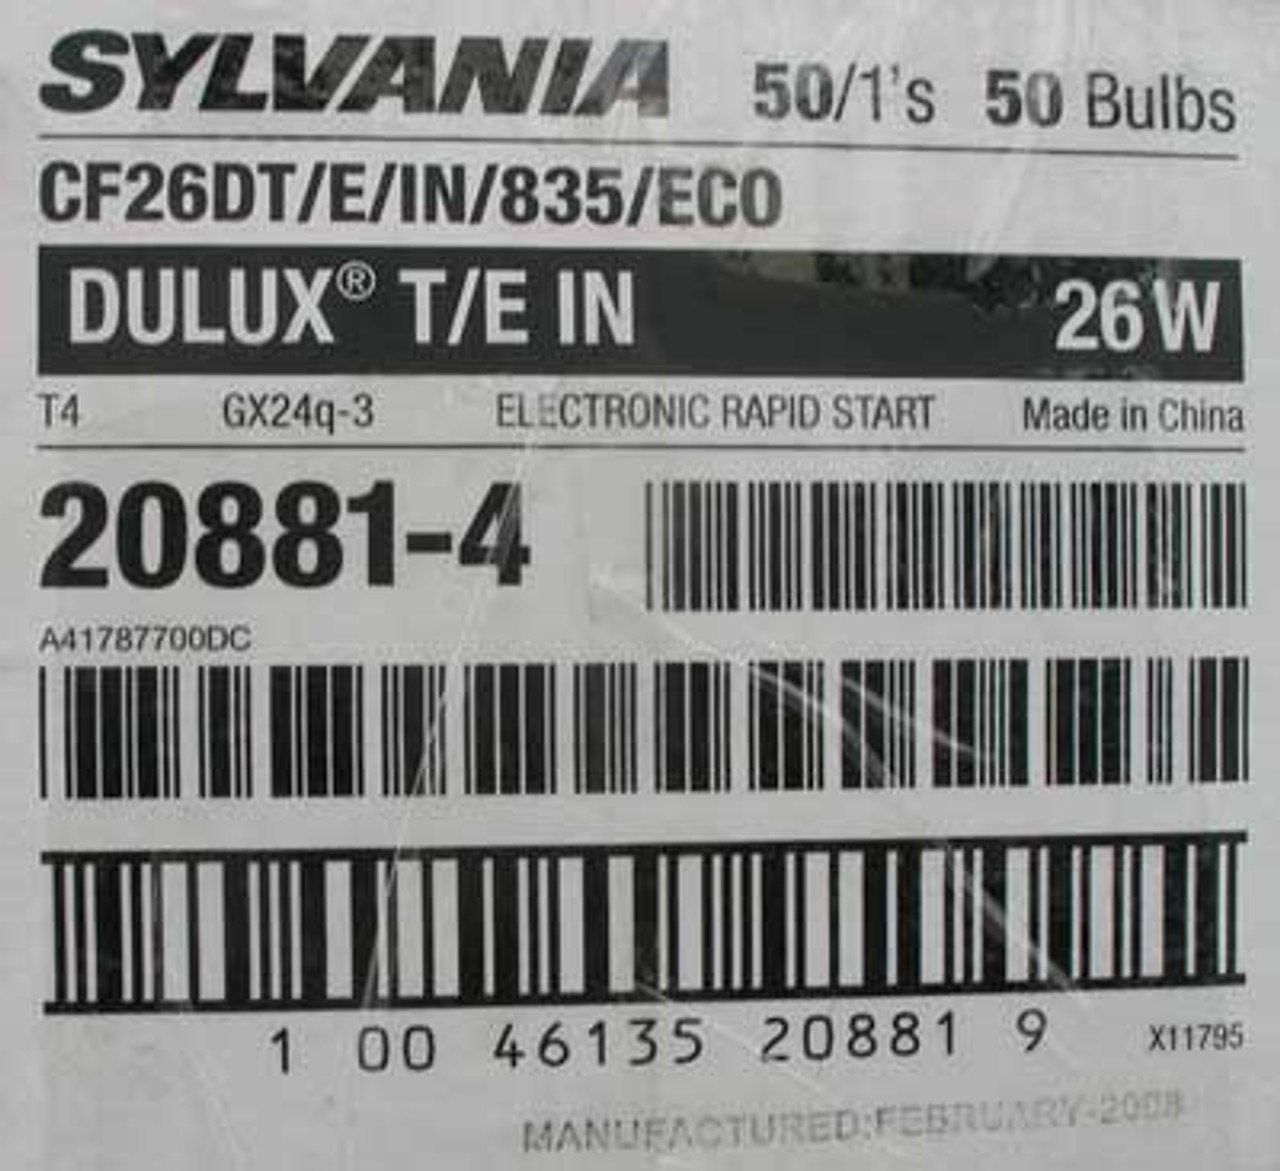 Sylvania CF26DT/E/IN/835/ECO Dulux T/E 26W Comp Fluorescent Bulb, 2PC - New